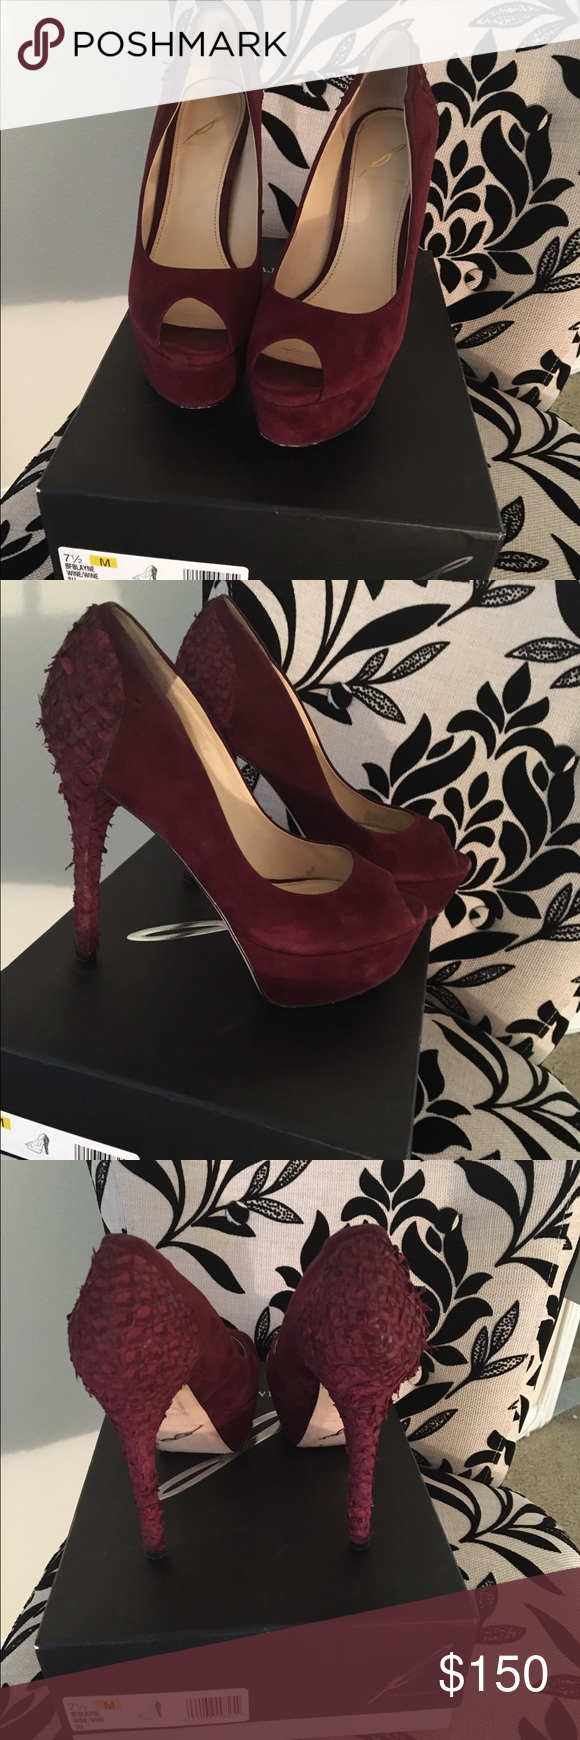 "B Brian Atwood Suede Peep Toe Pump These beautiful burgundy pumps will be a unique piece for this season.  The heel is very unique and make a BOLD fashion statement. Heel about 5 1/4"" stacked heel with 1 5/8"" platform. Comes with box. Shoes worn a few times. B Brian Atwood Shoes Heels"